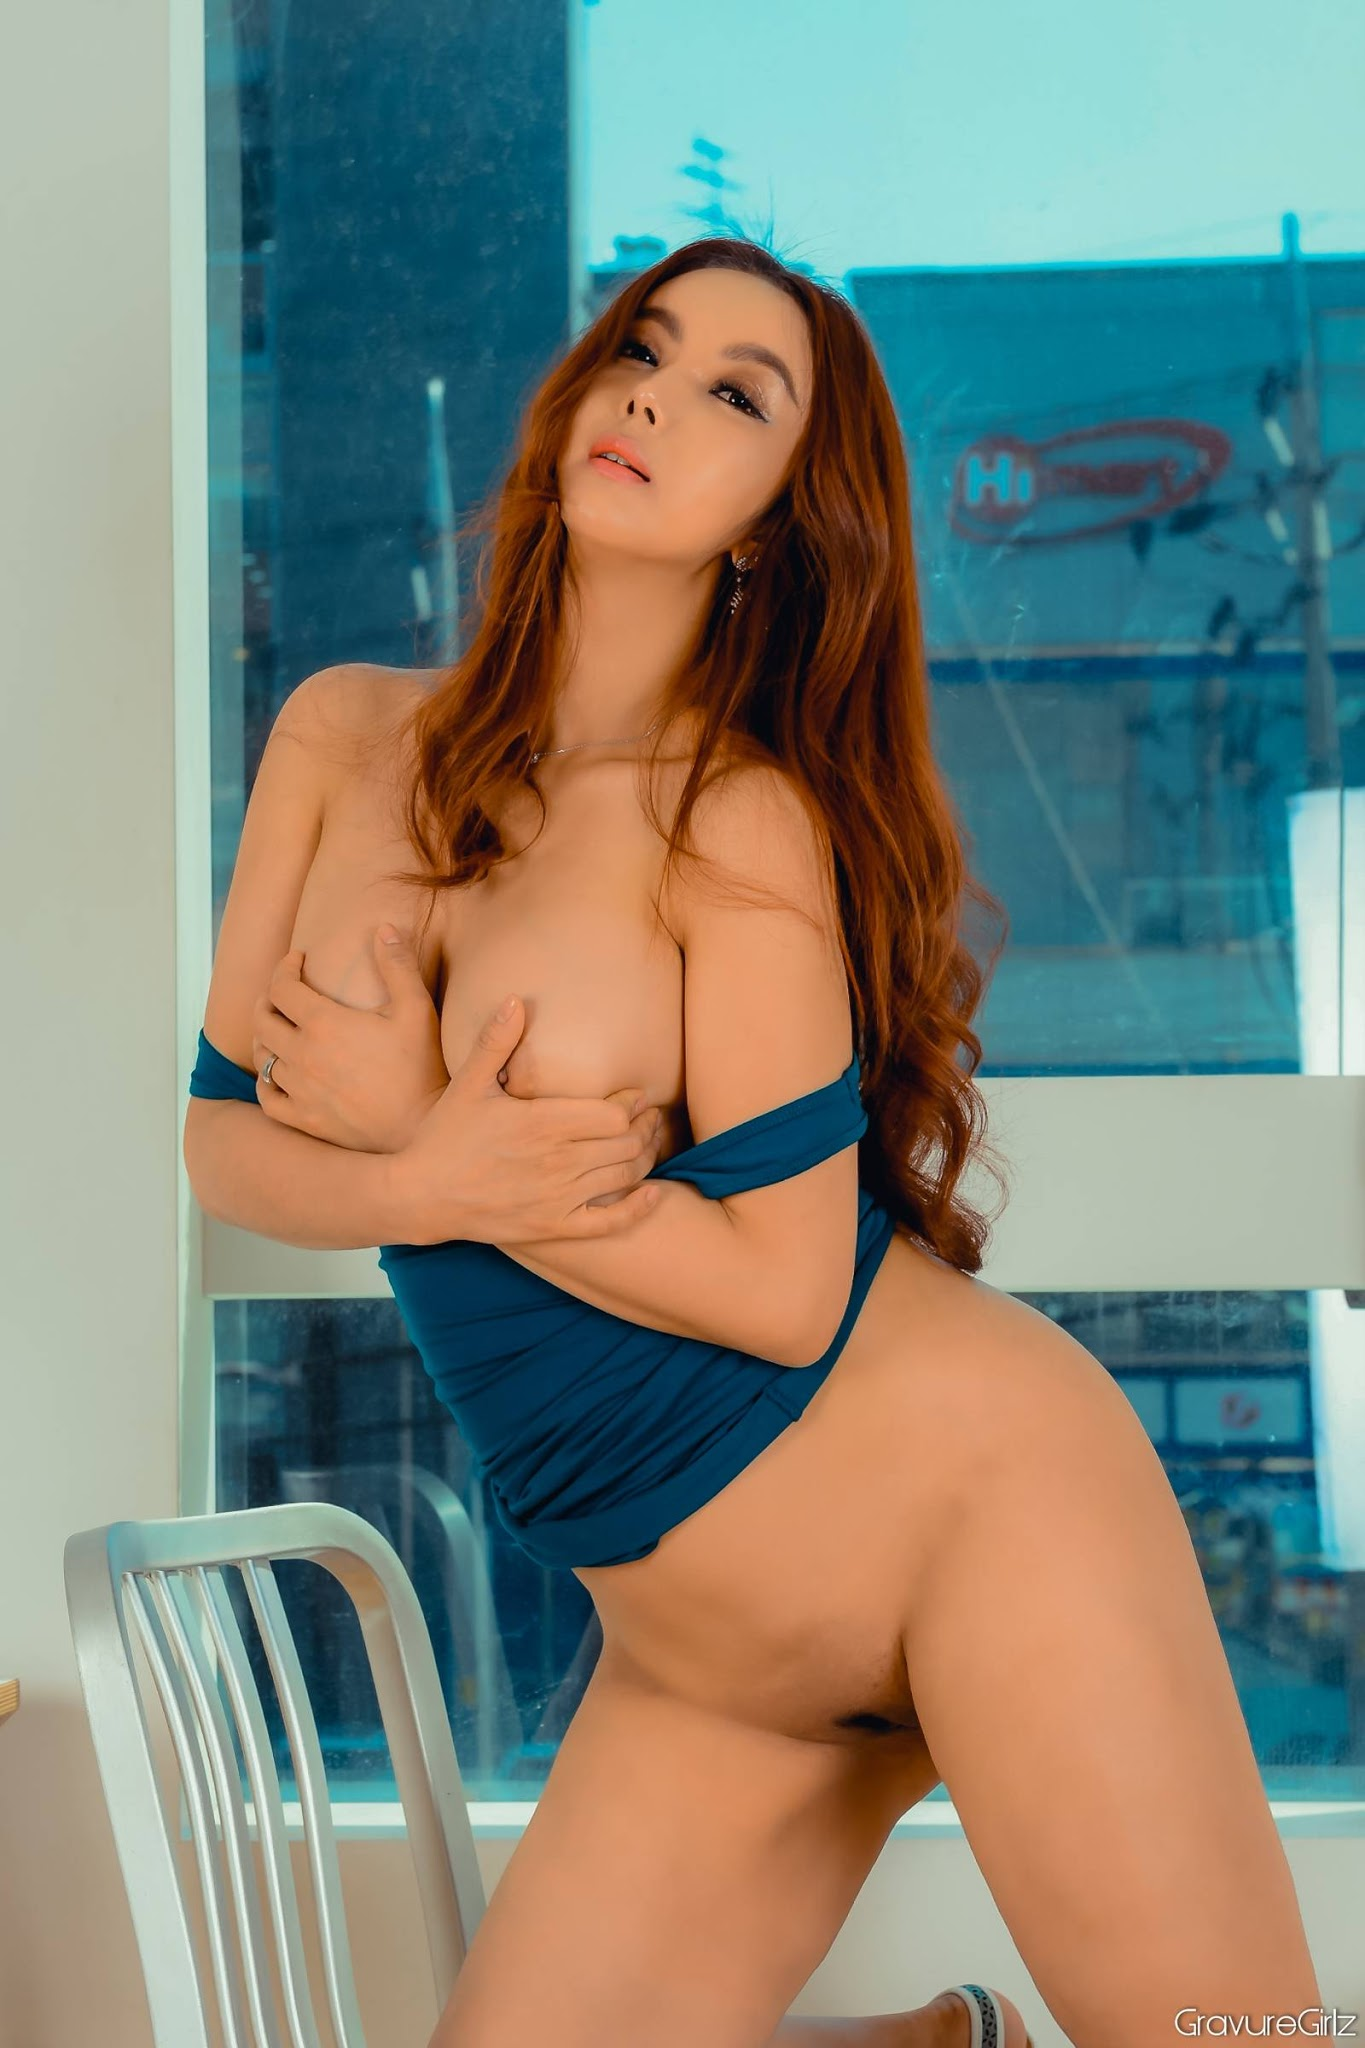 Finest Uncensored Naked Girl Porn Photos